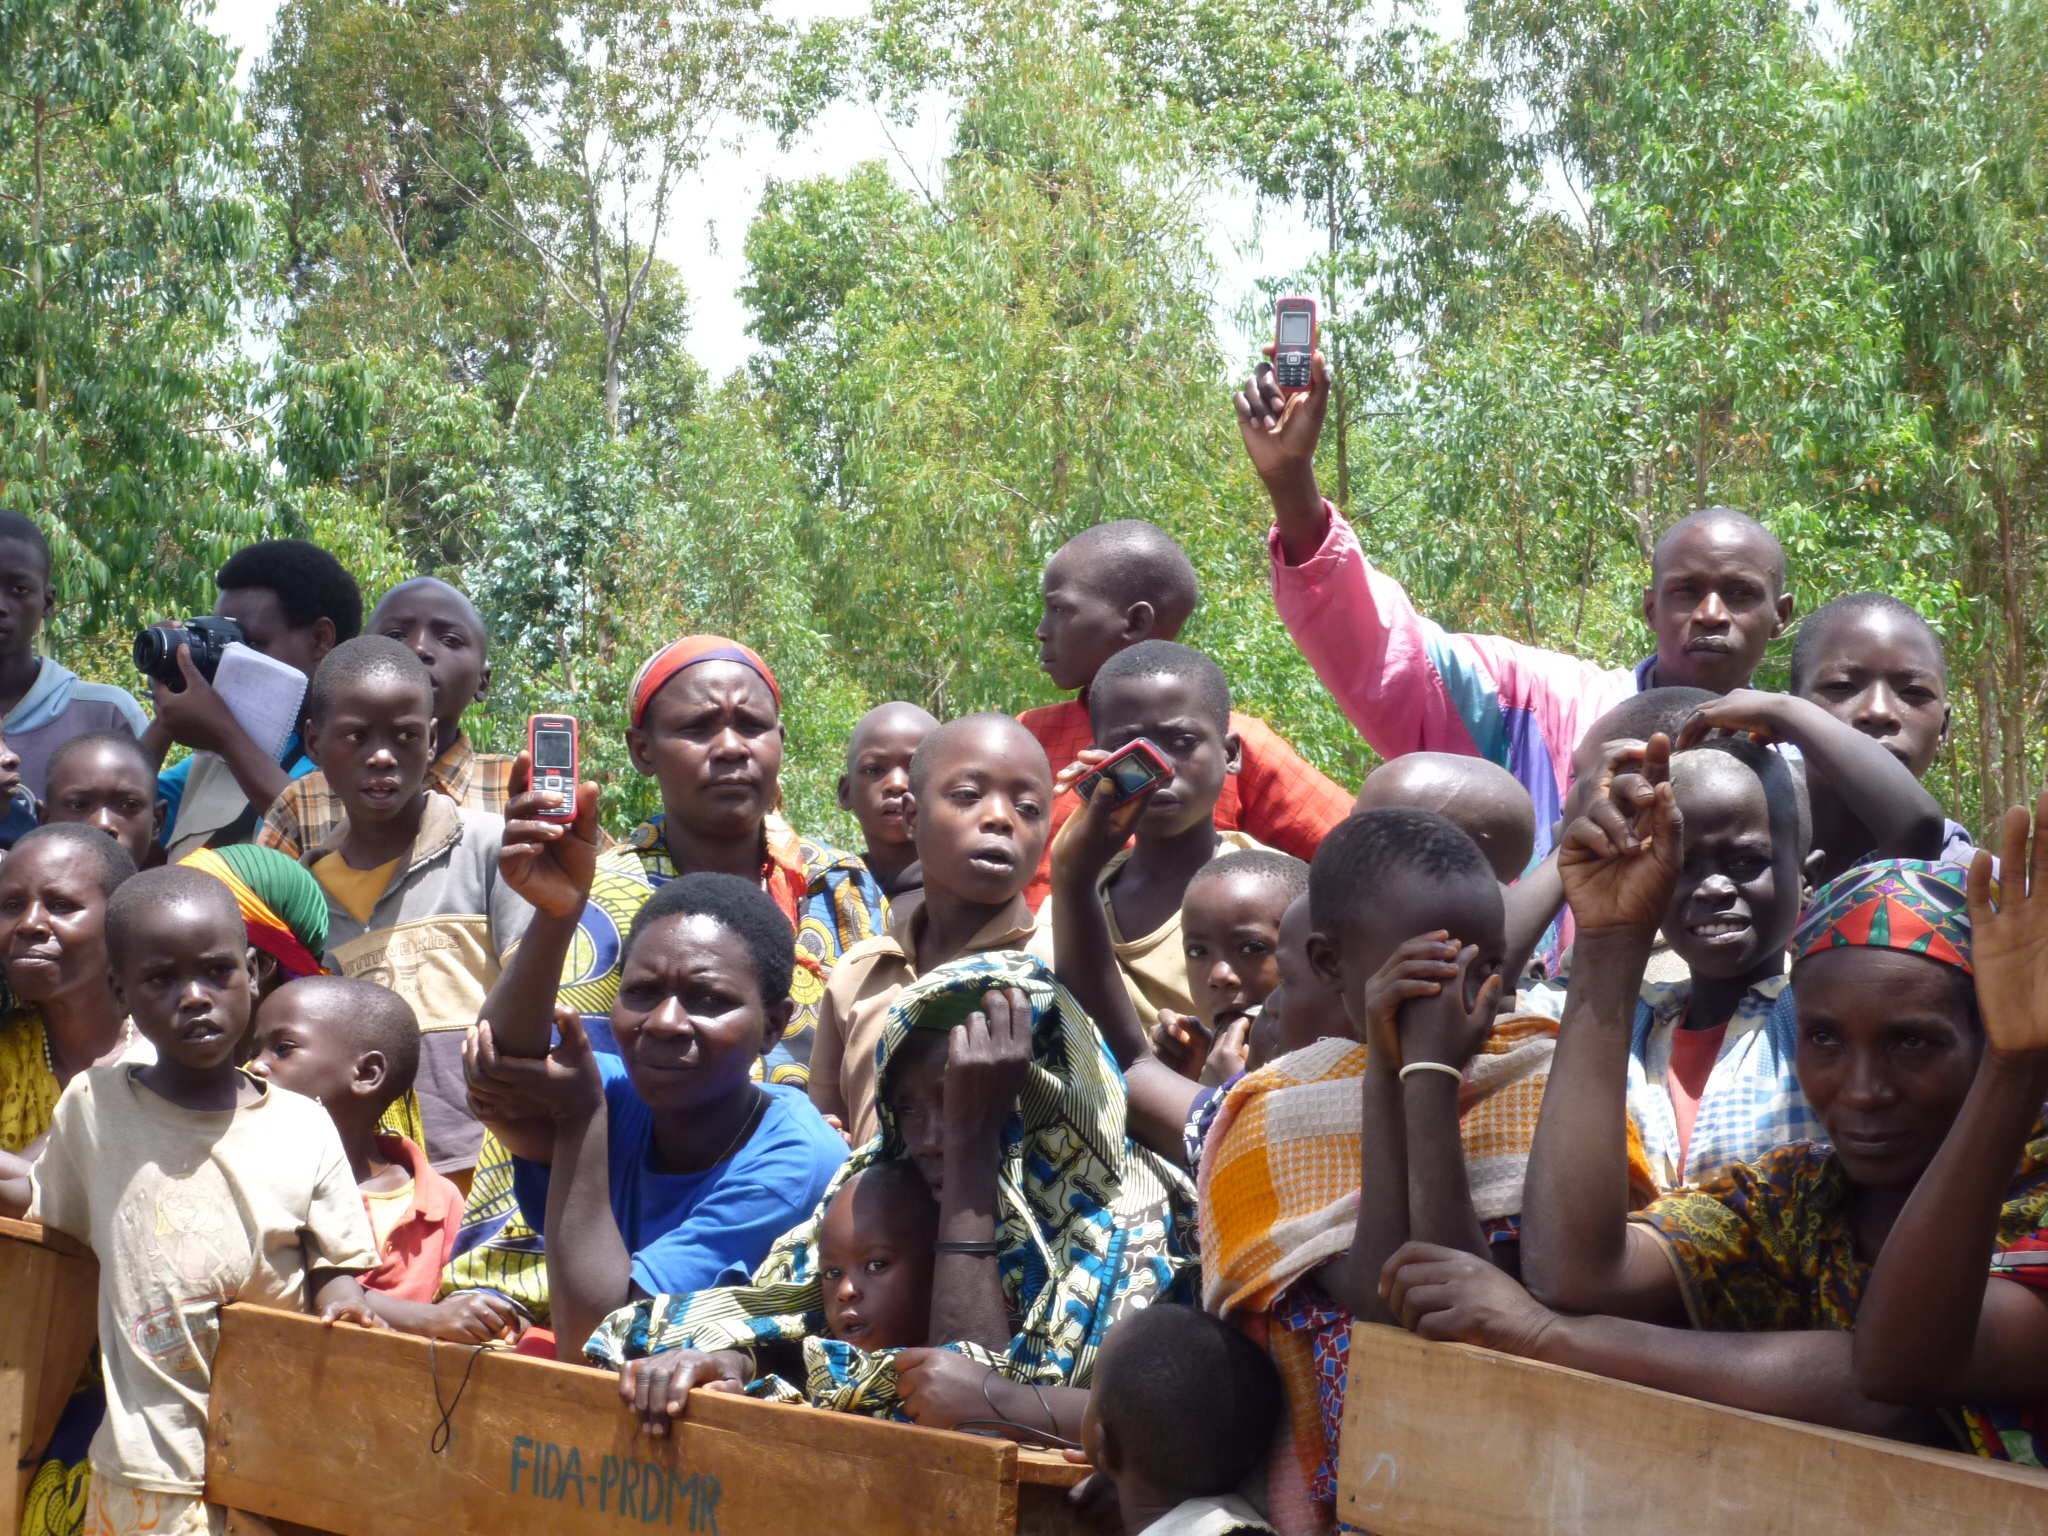 On a colline in Burundi, people hold up their mobile phones